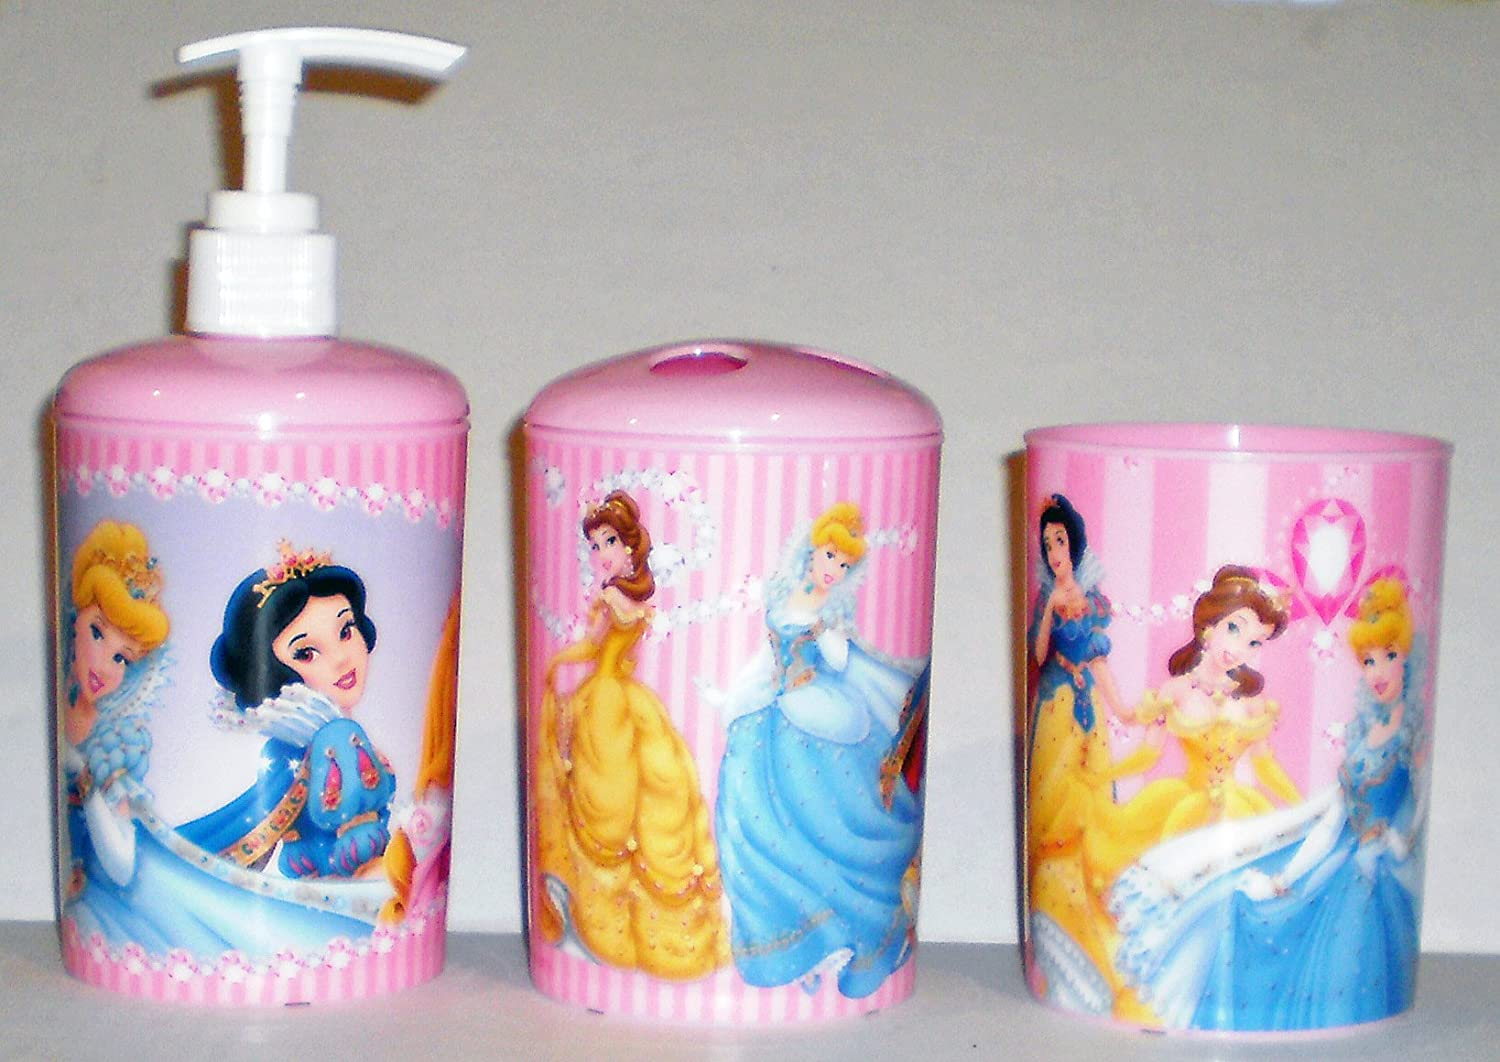 Amazon.com: Disney Princess 3 Piece Bathroom Accessories Set: Home U0026 Kitchen